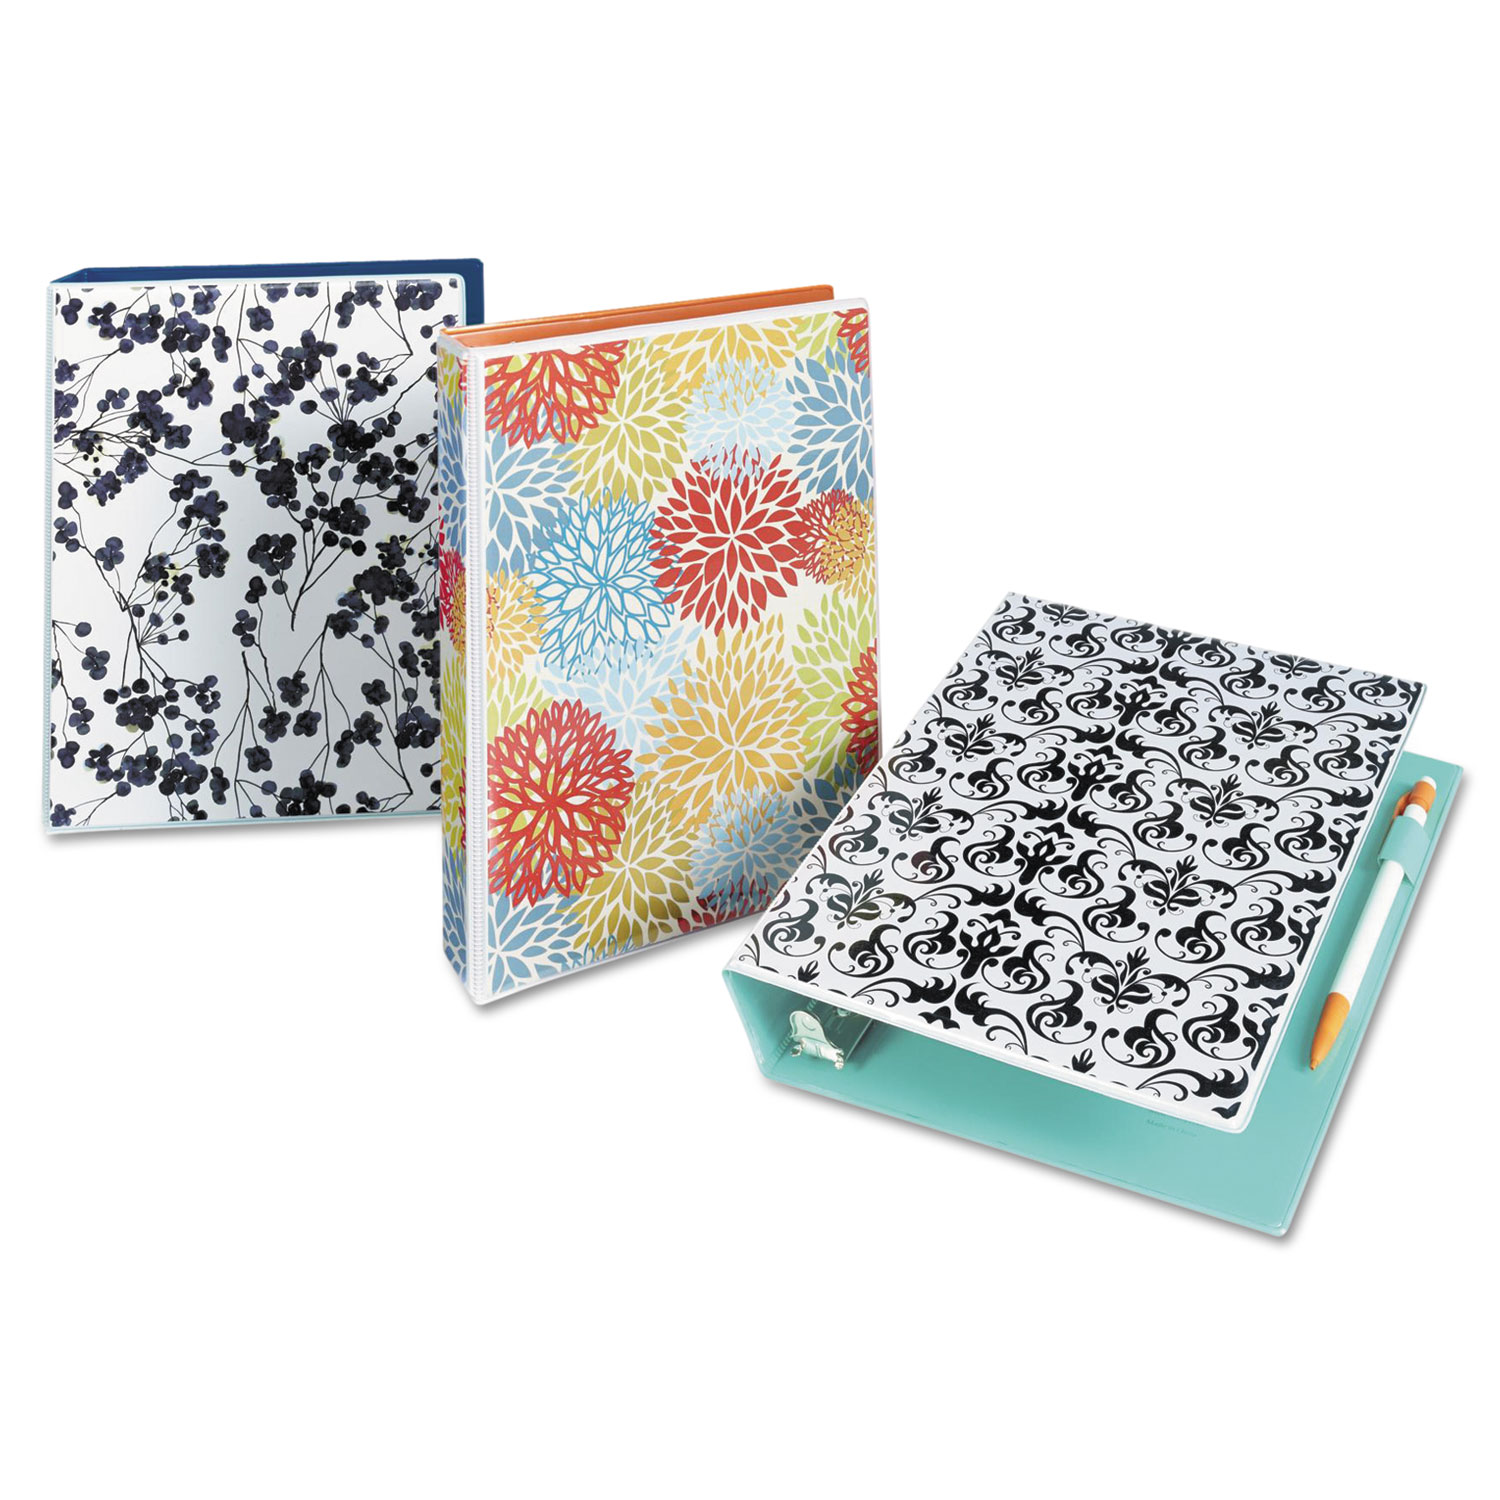 Look At Durable Mini Size Non-View Fashion Binder With